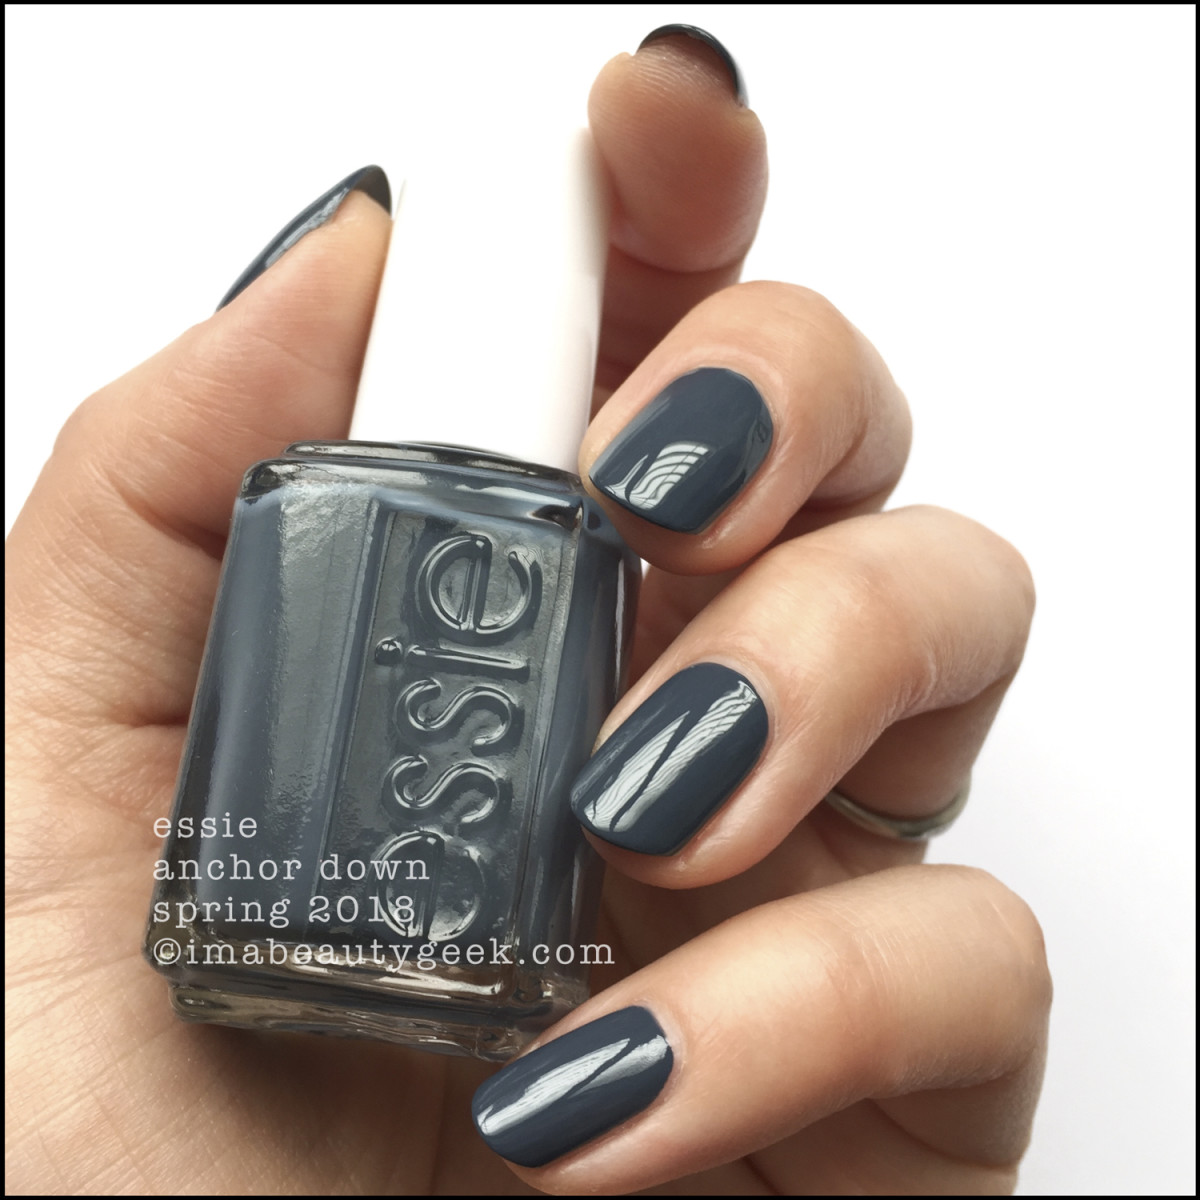 Essie Anchor Down - Essie Spring 2018 Collection Swatches Review